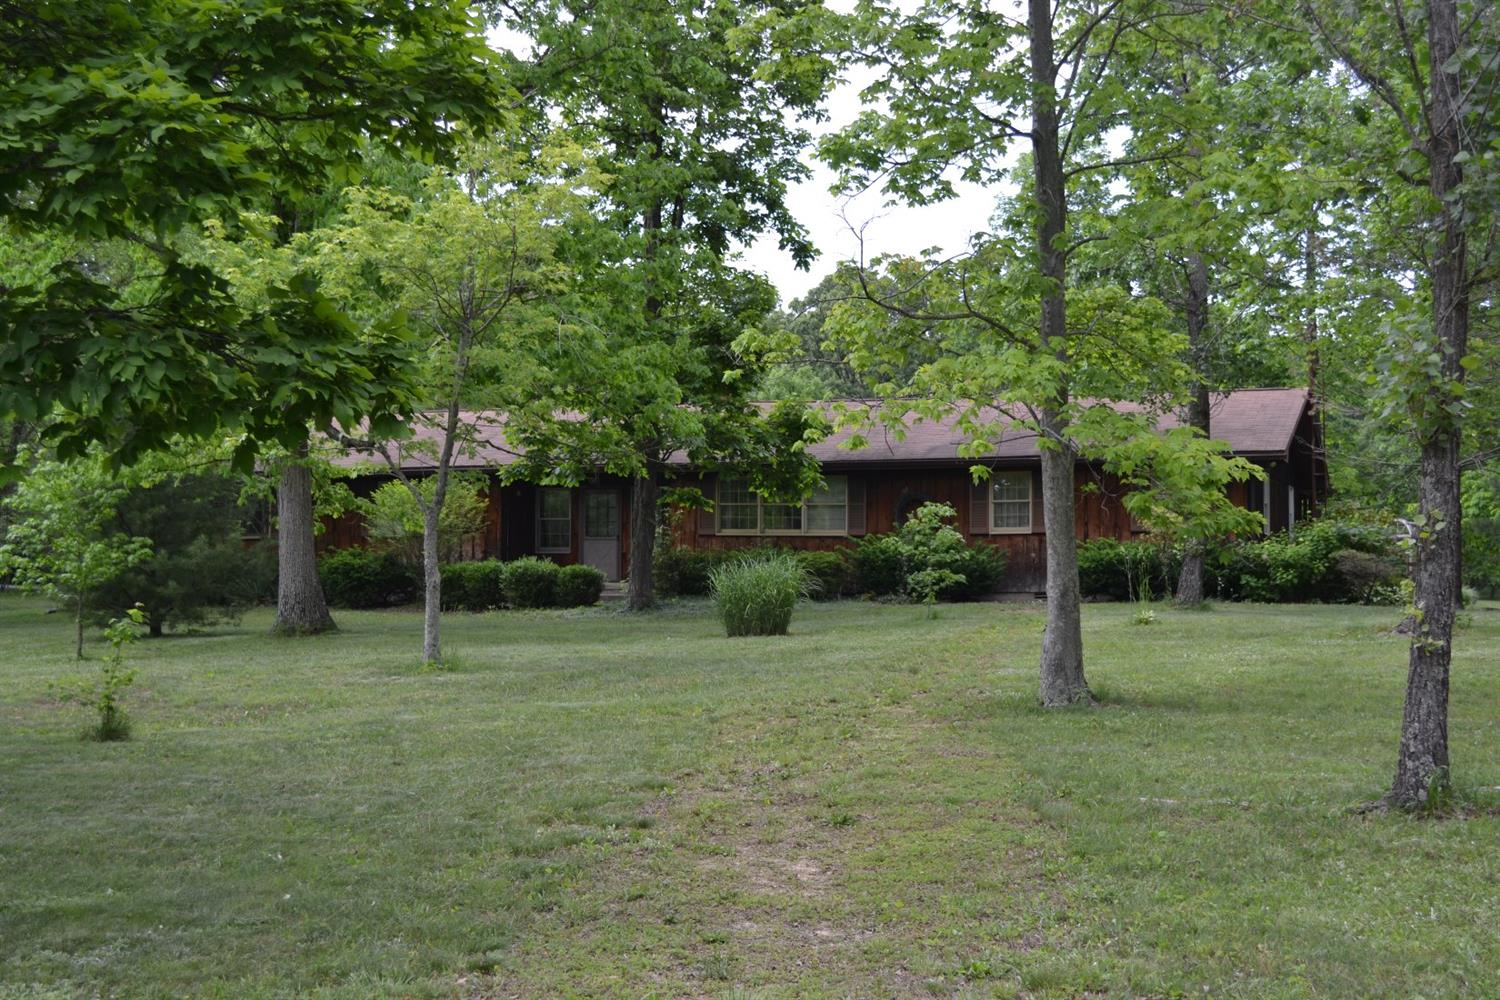 50 Lawler Rd, West Union, OH - USA (photo 1)